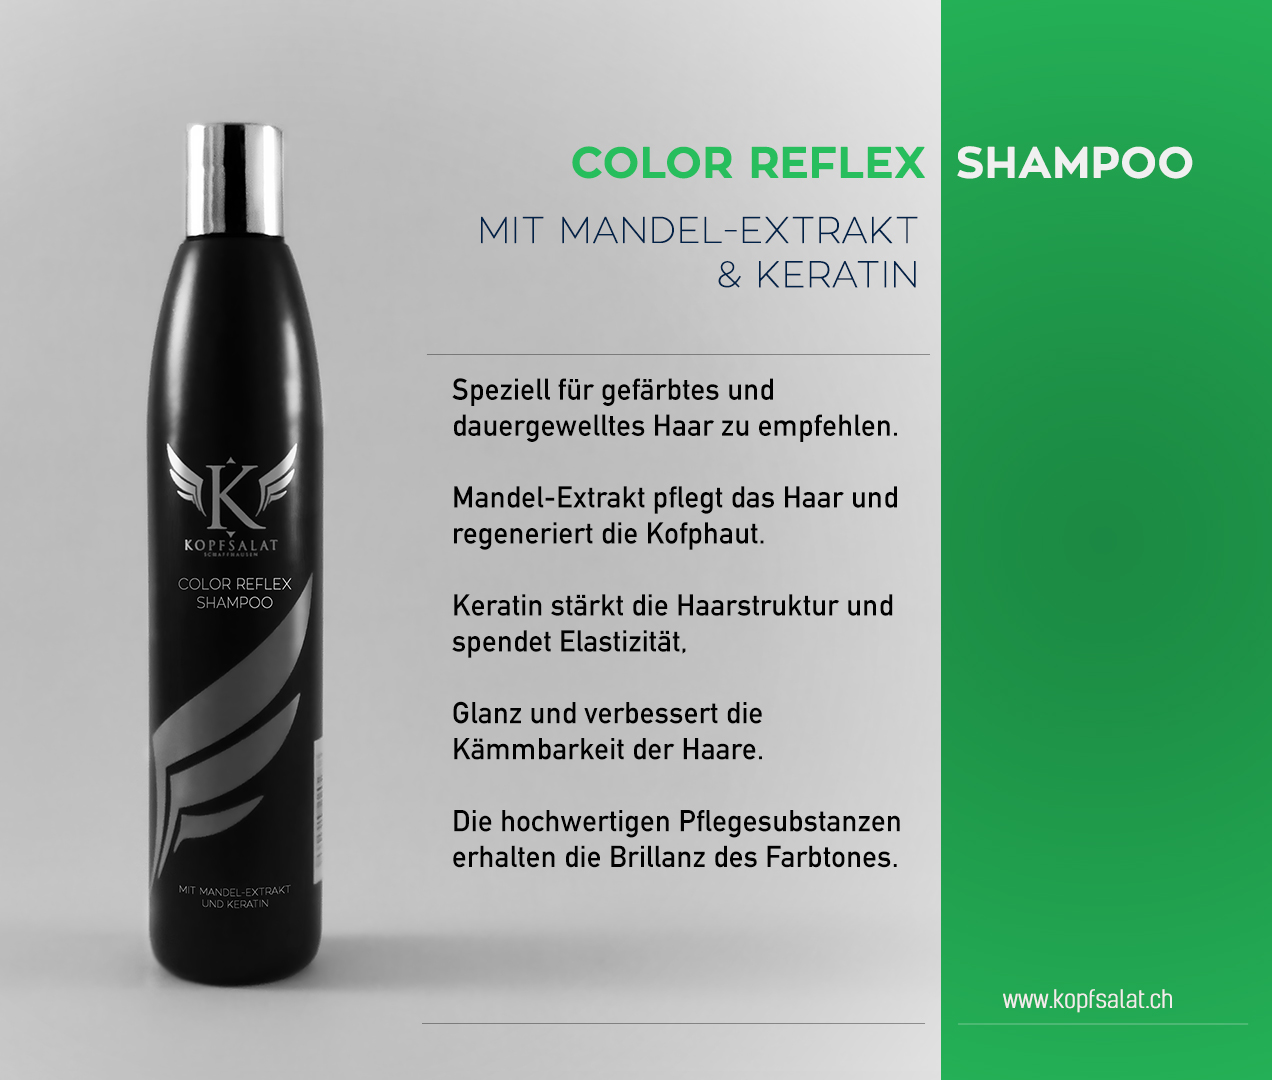 1 color reflex shampoo